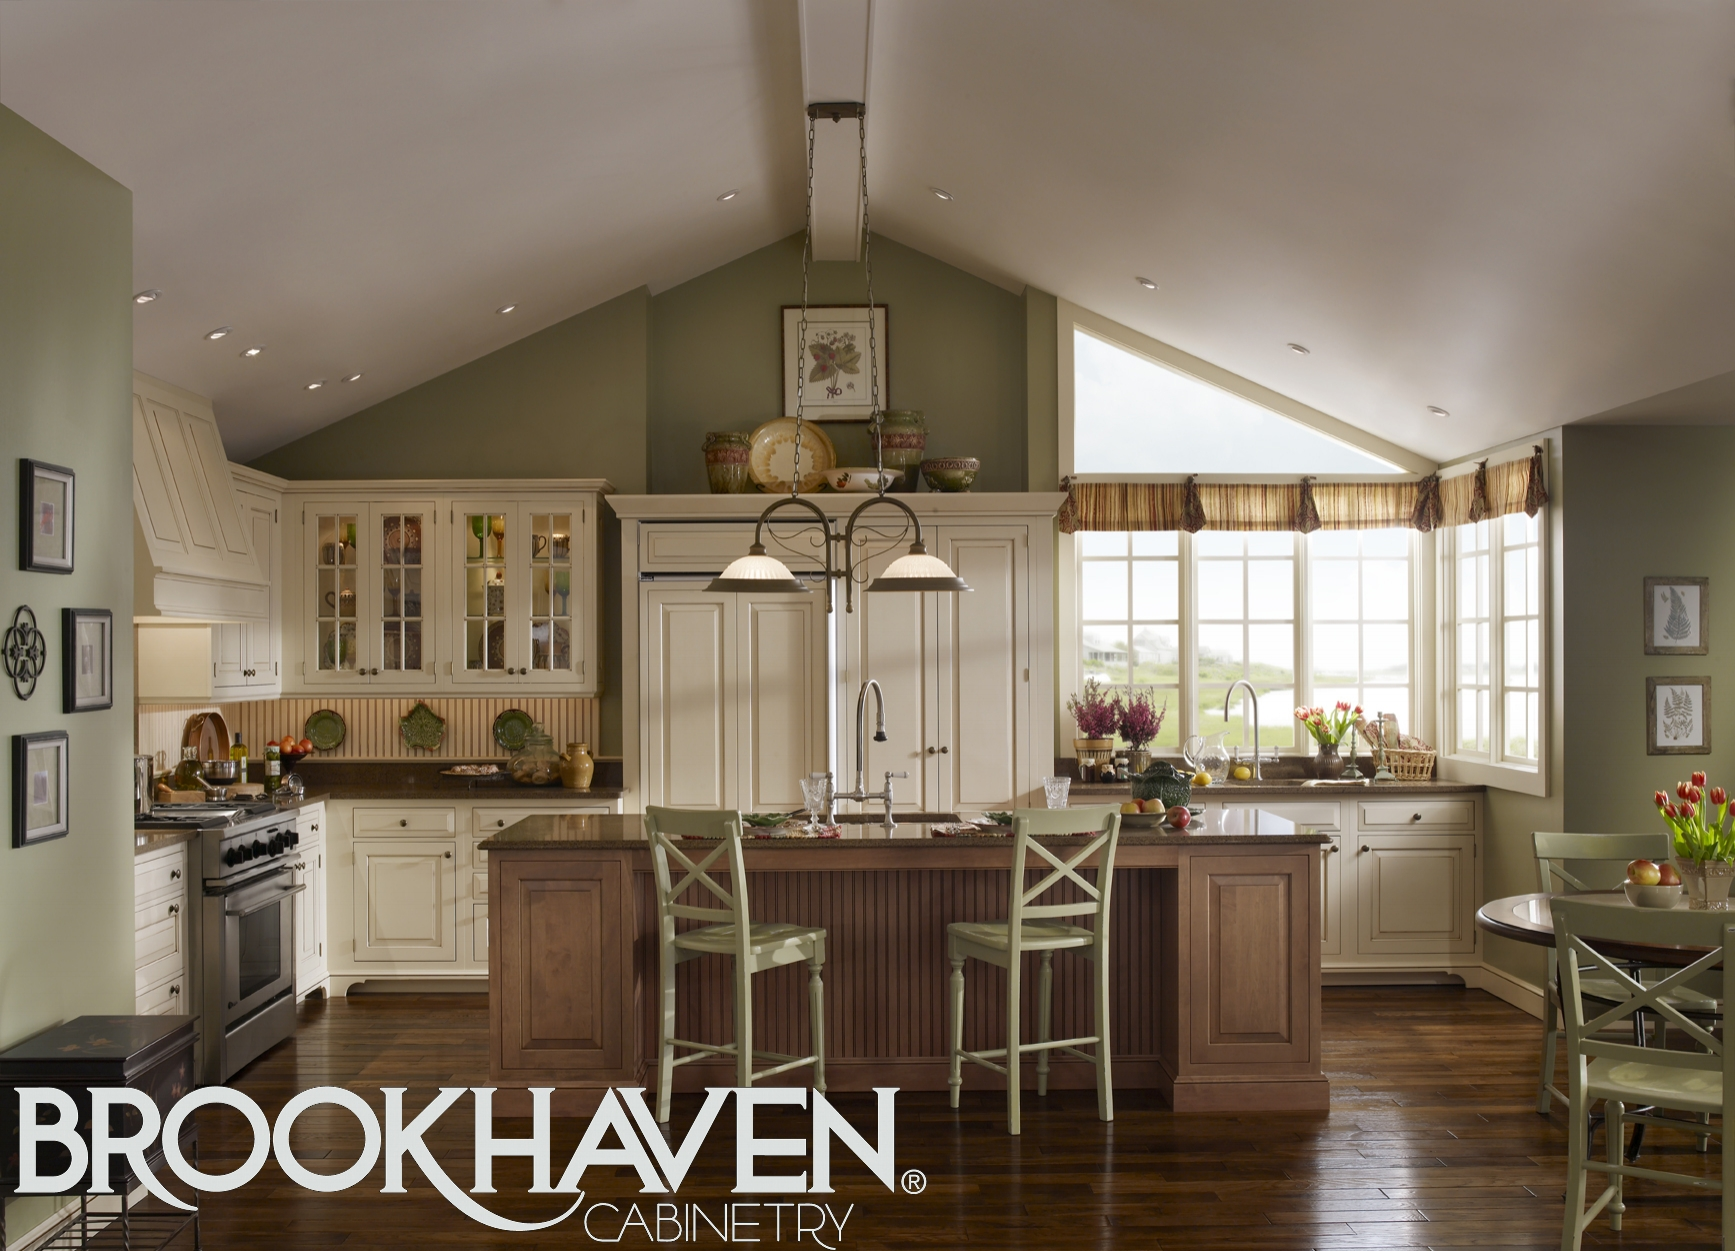 brookhaven-cabinetry-cape-cod-kitchen.jpg